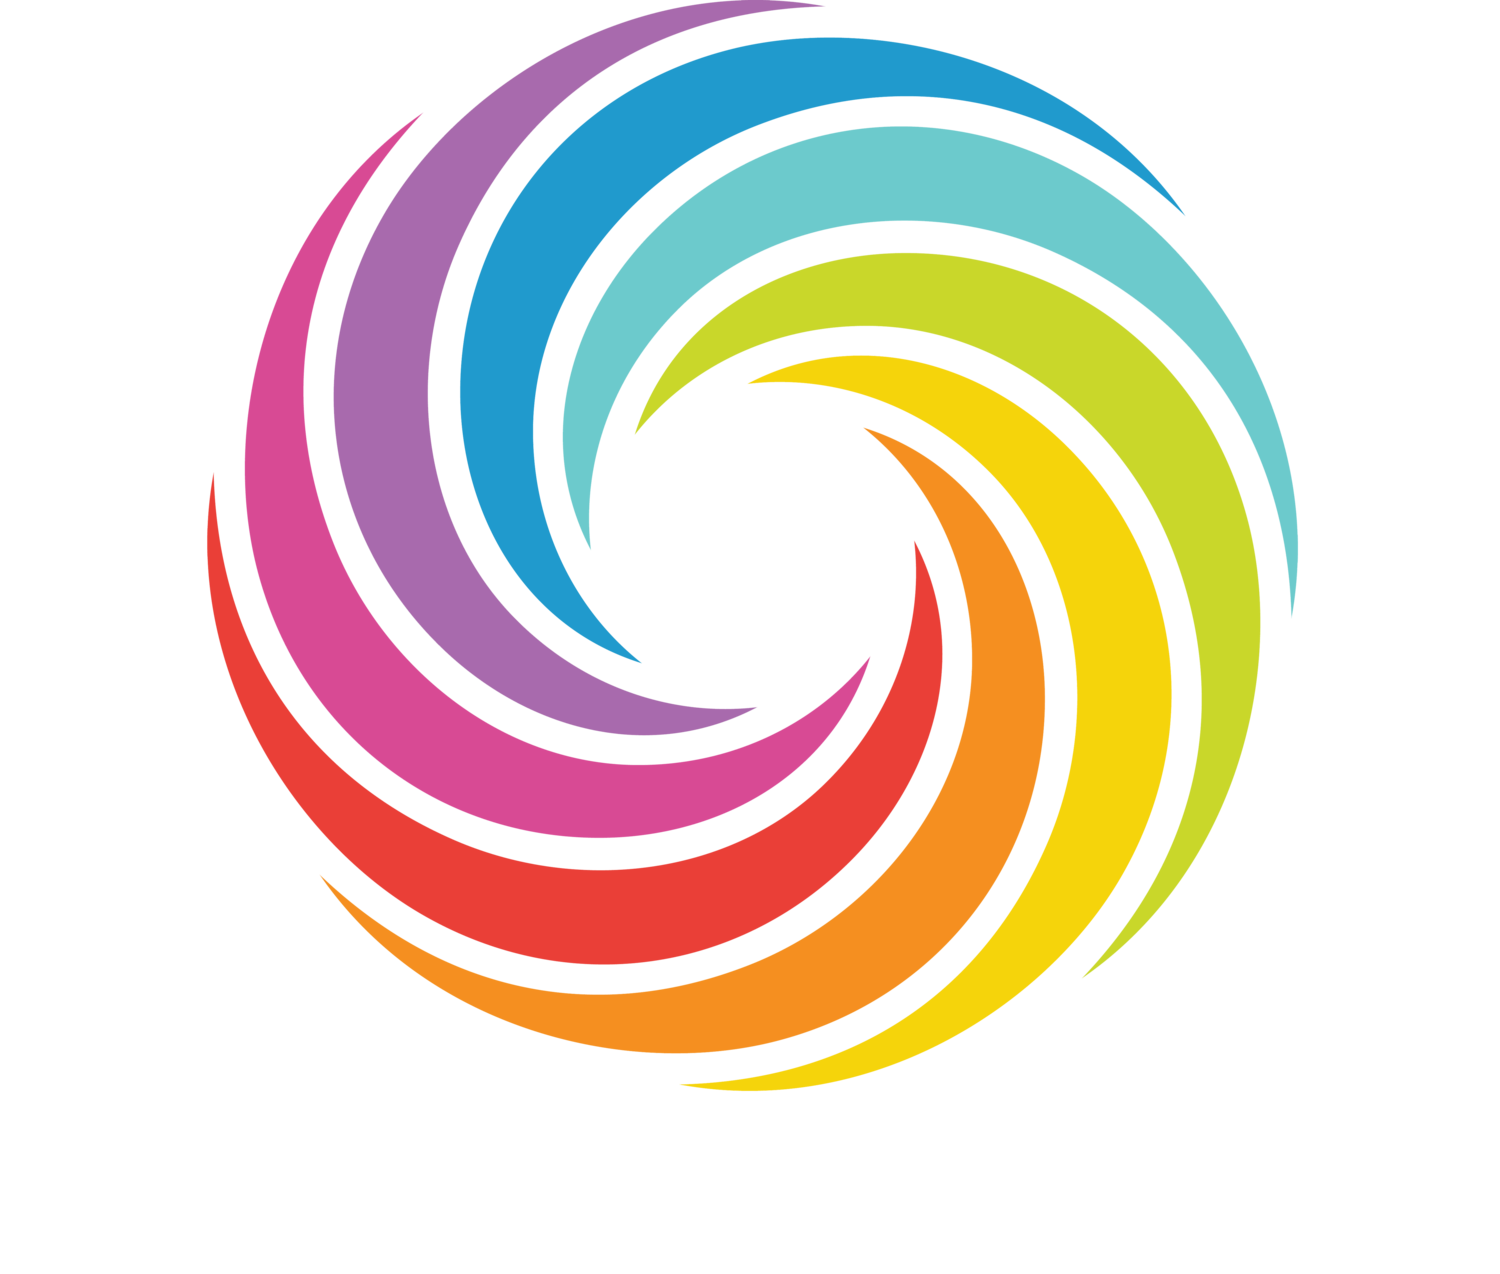 Art png images. Original rainbow bagels bagel